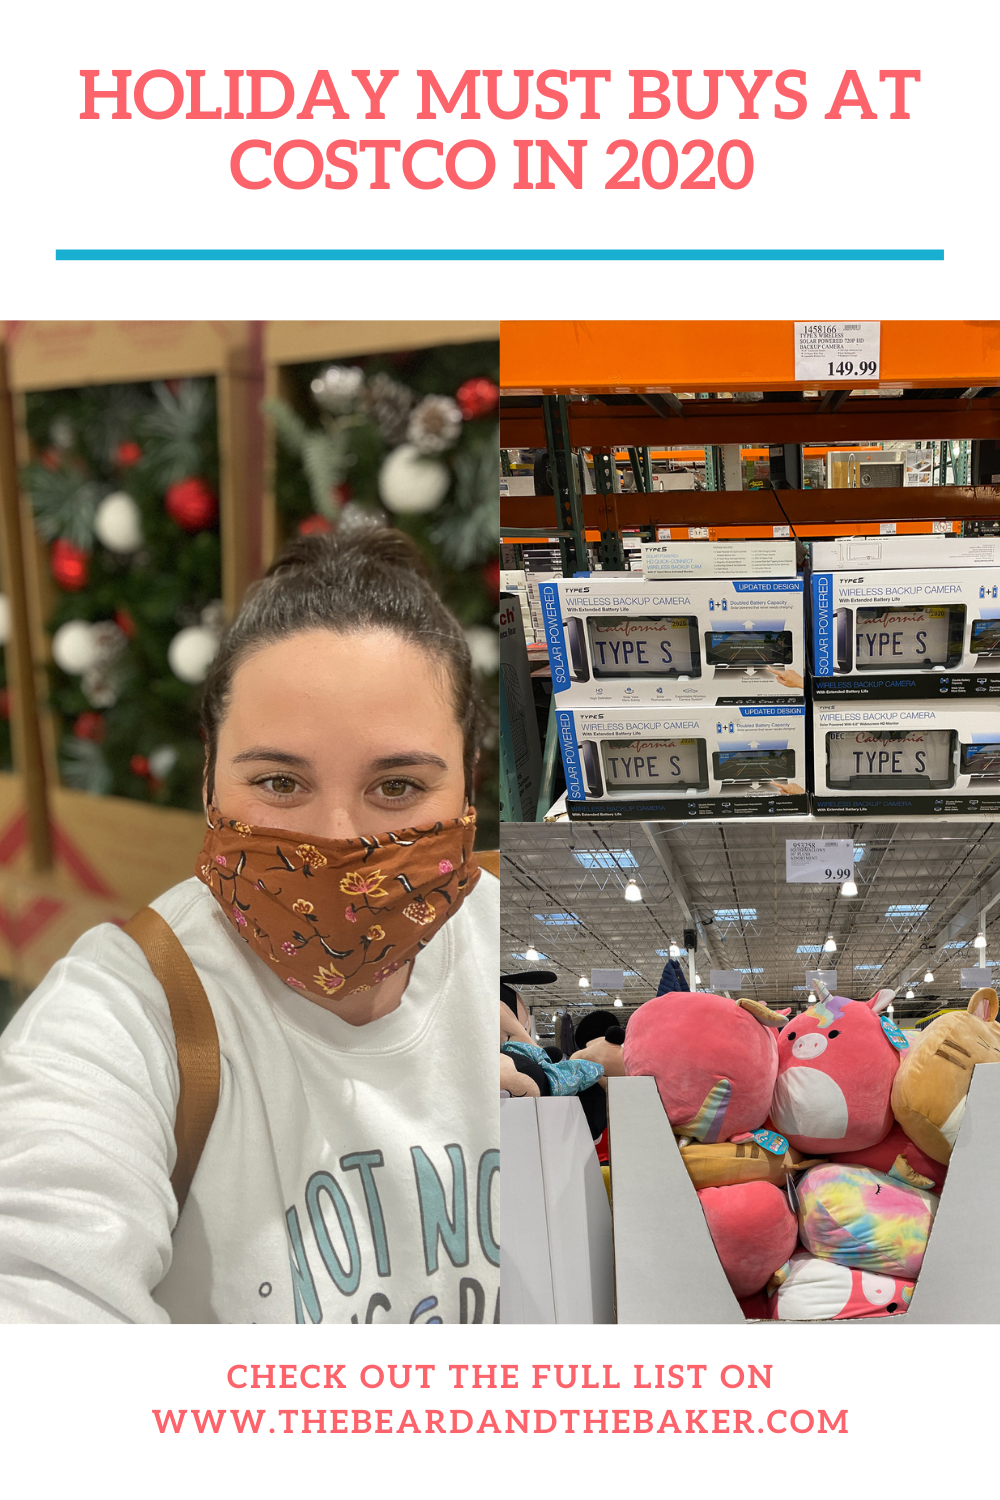 Must Buys At Costco For The Holidays Holiday Costco Save Money On Groceries